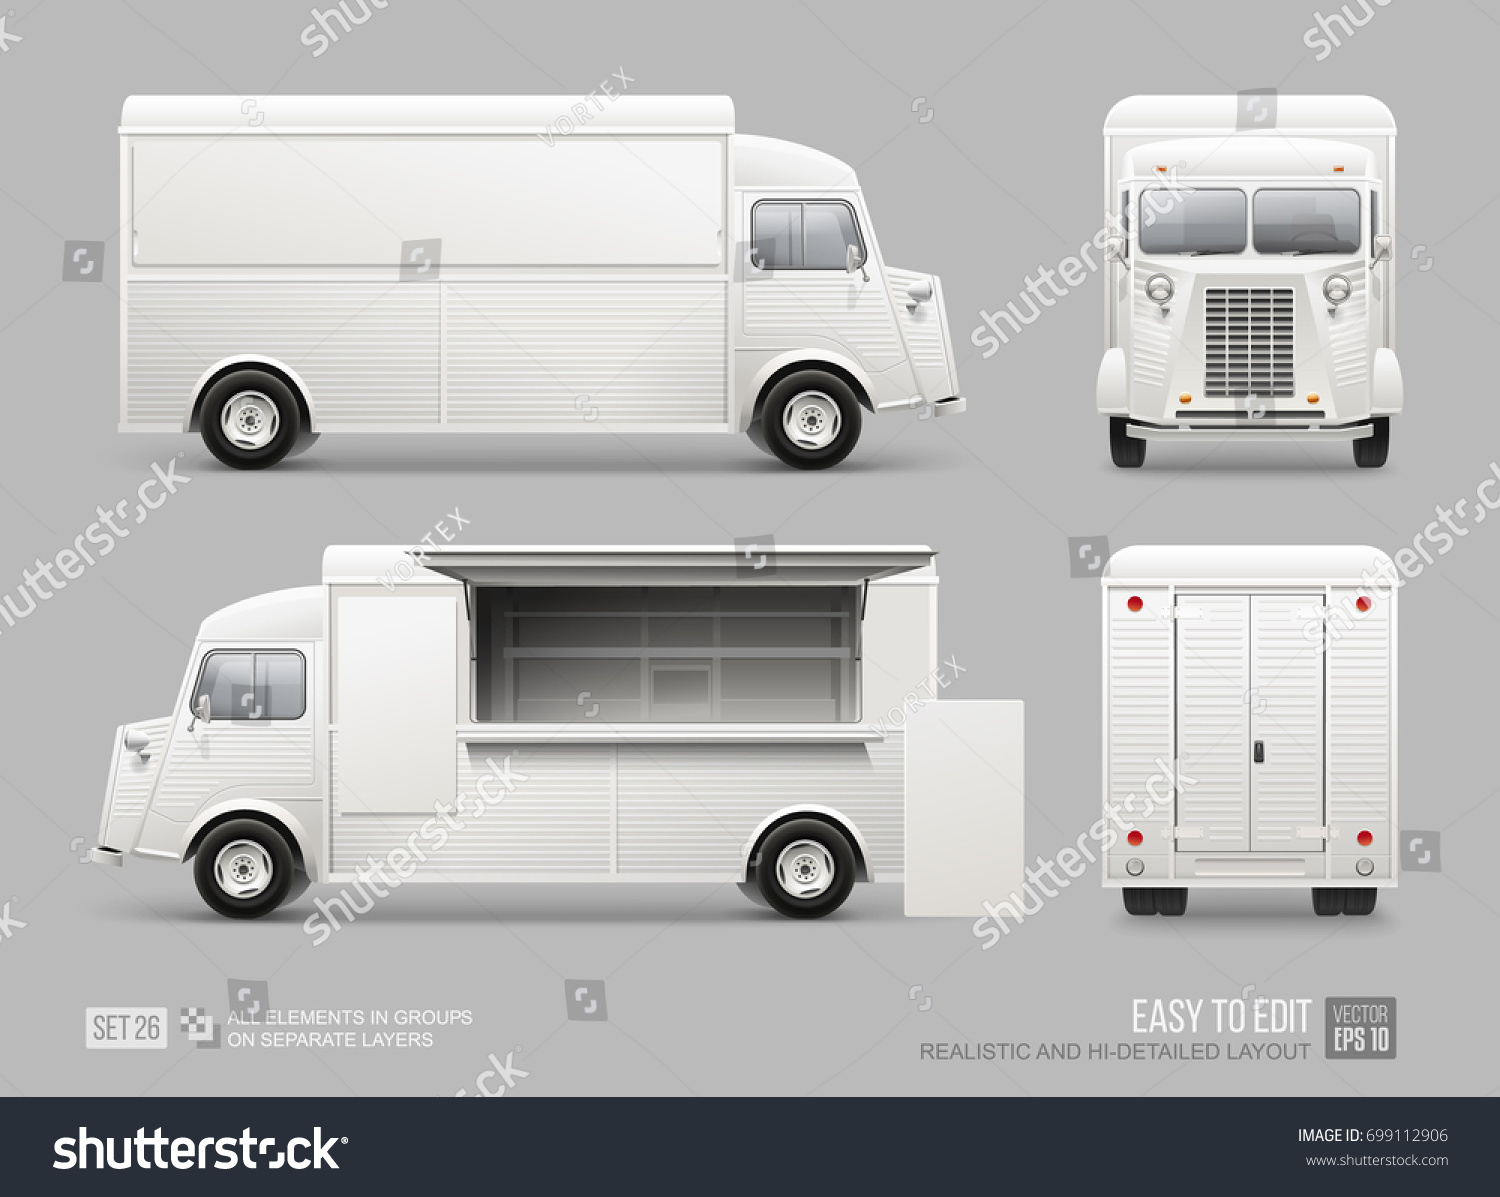 Old School Food Truck Mockup Set Stock Vector Royalty Free Llv Mail Fuel Filter Isolated On Grey Realistic Fast Van